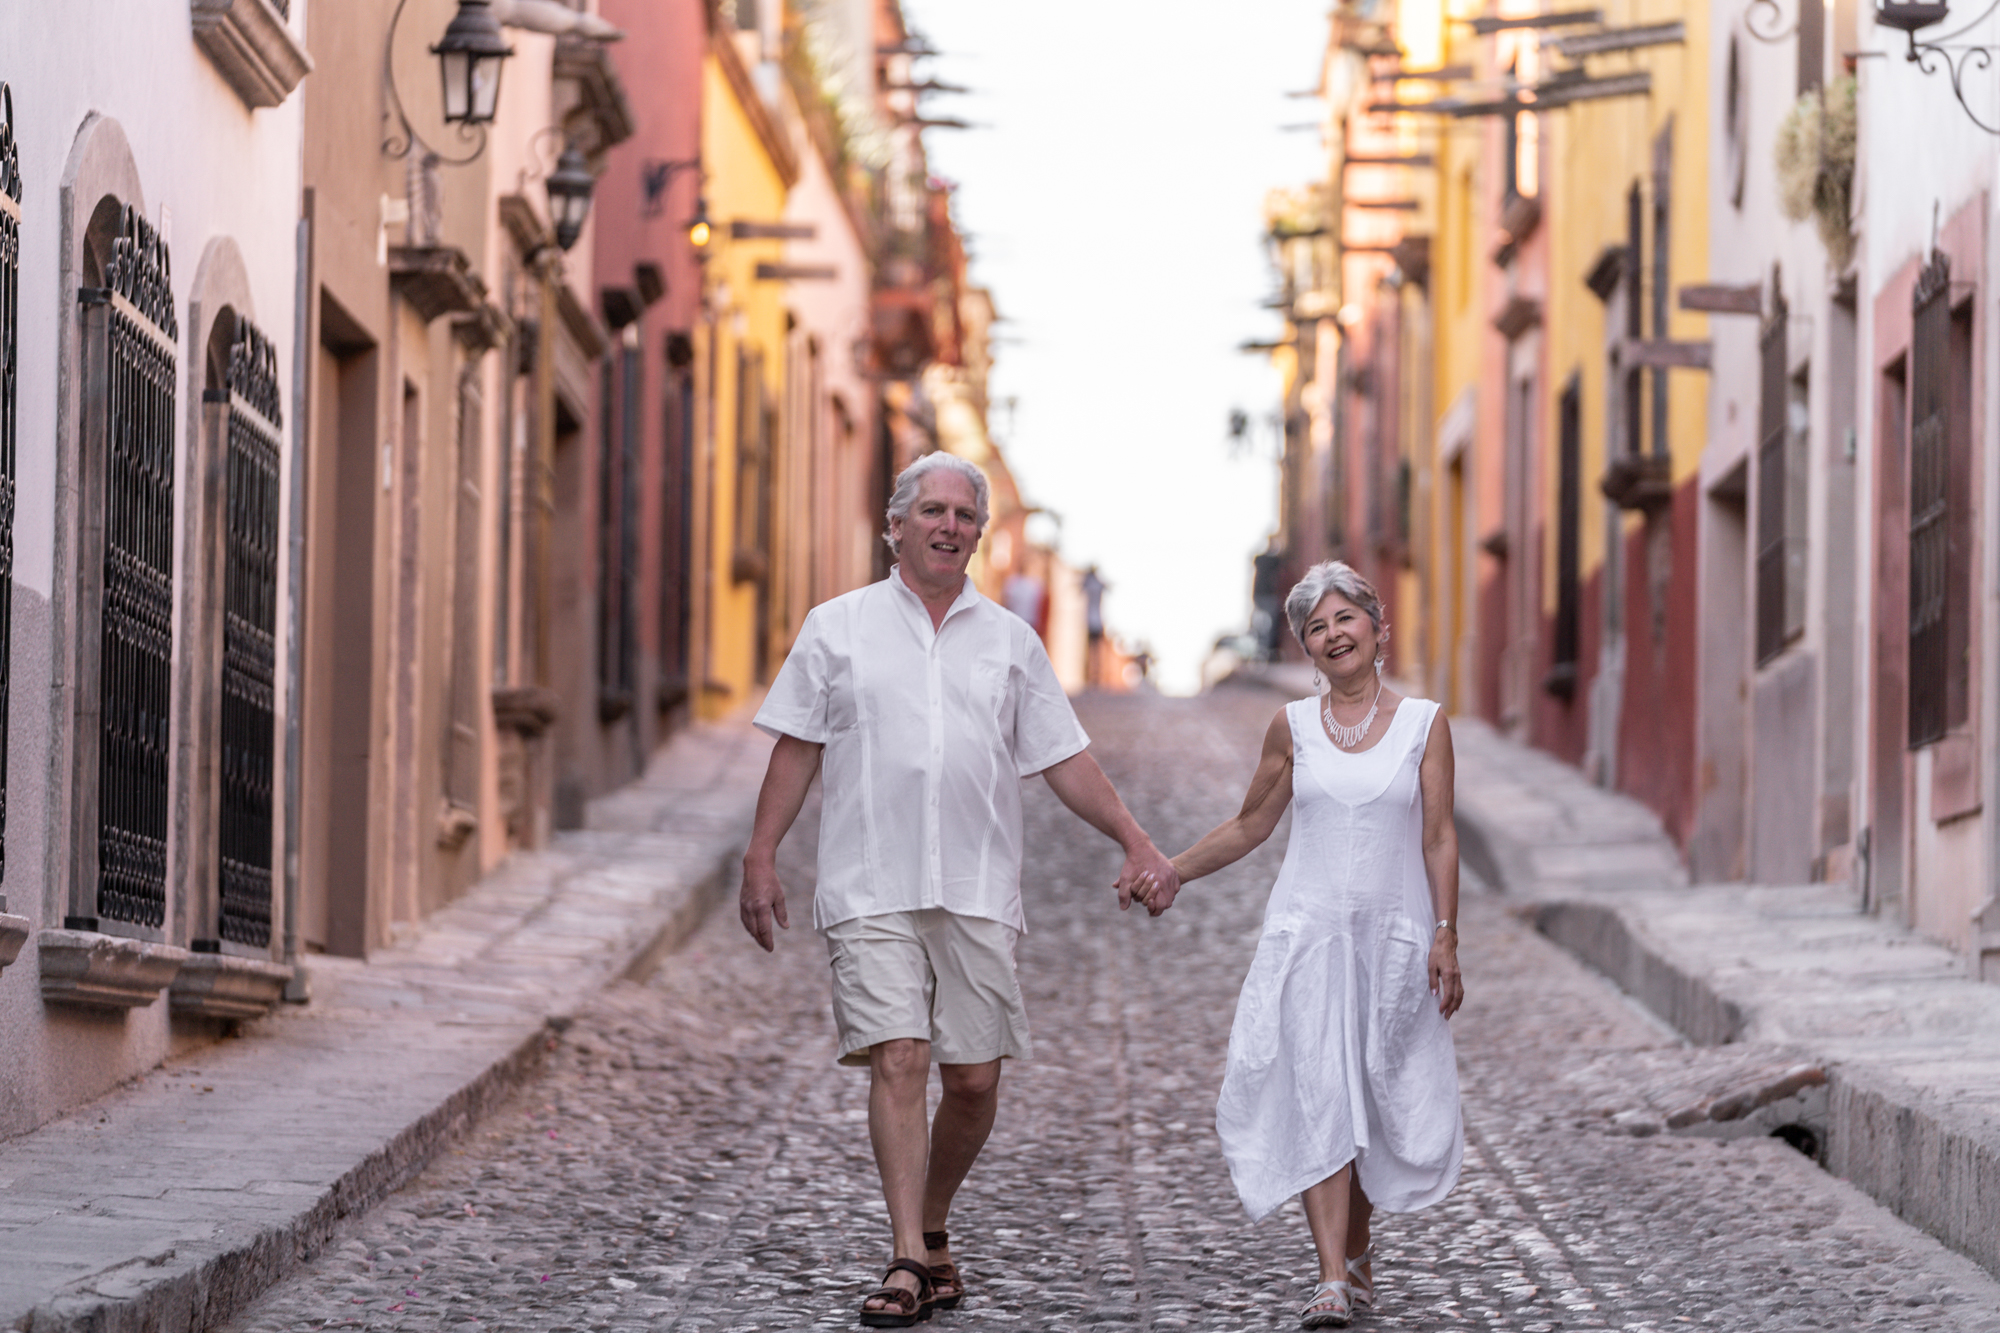 Photoshoot session in San Miguel de Allende with Suzanne and Leo-18.jpg